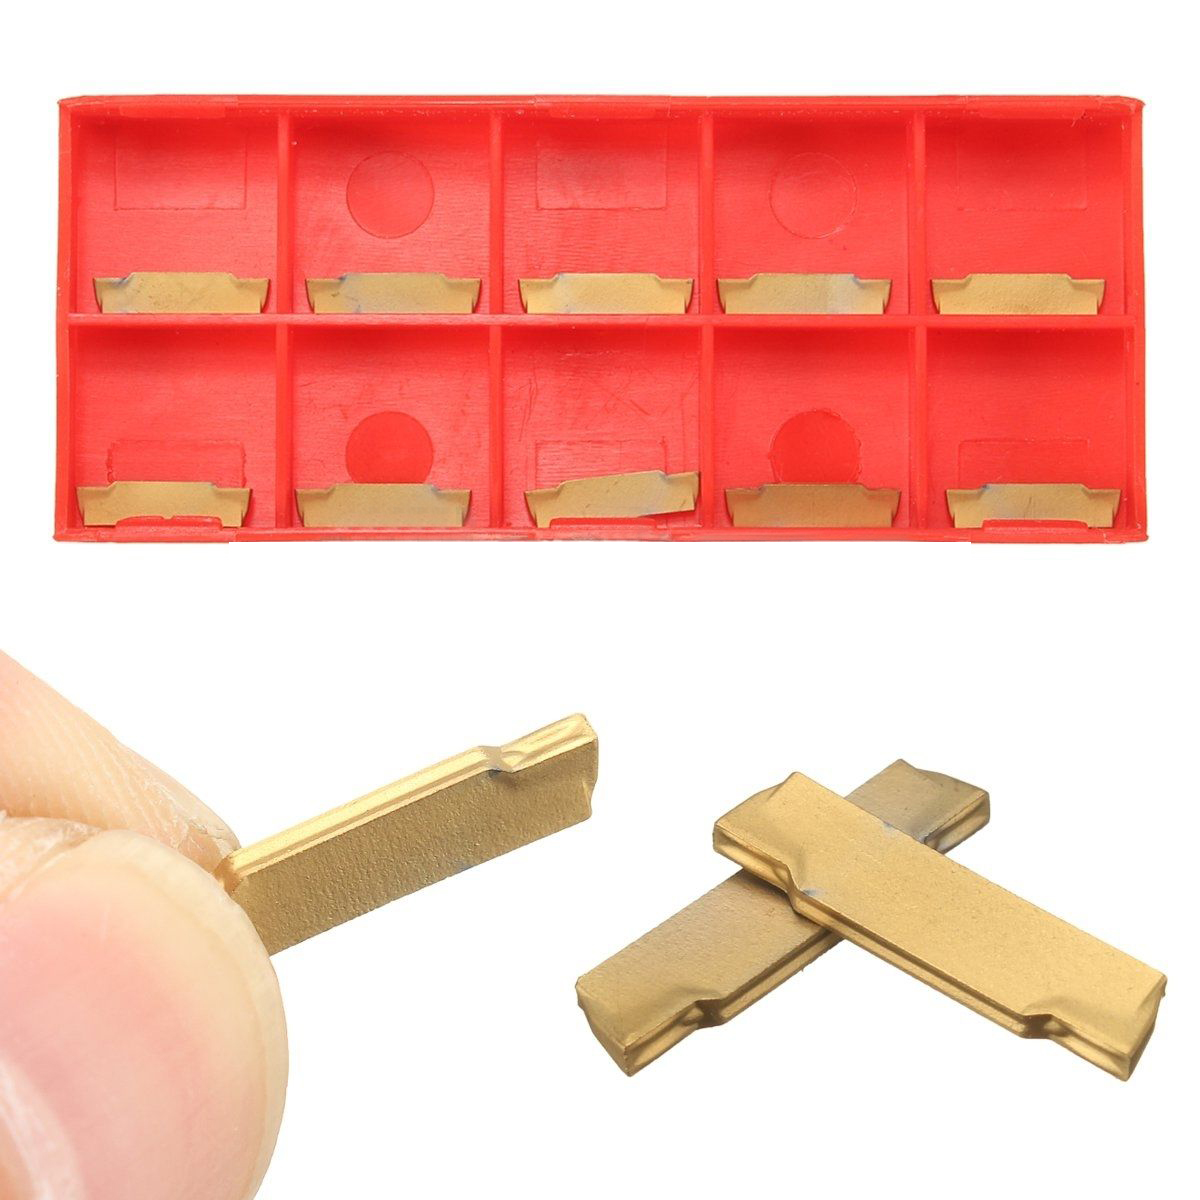 10pcs MGMN150-G Carbide Inserts 1.5mm Mayitr CNC Machine Lathe Grooving Inserts Carbide Blades Cutting Milling Turning Tool 2x12mm lathe parting cutting milling tool holder with 5 blades 200mm